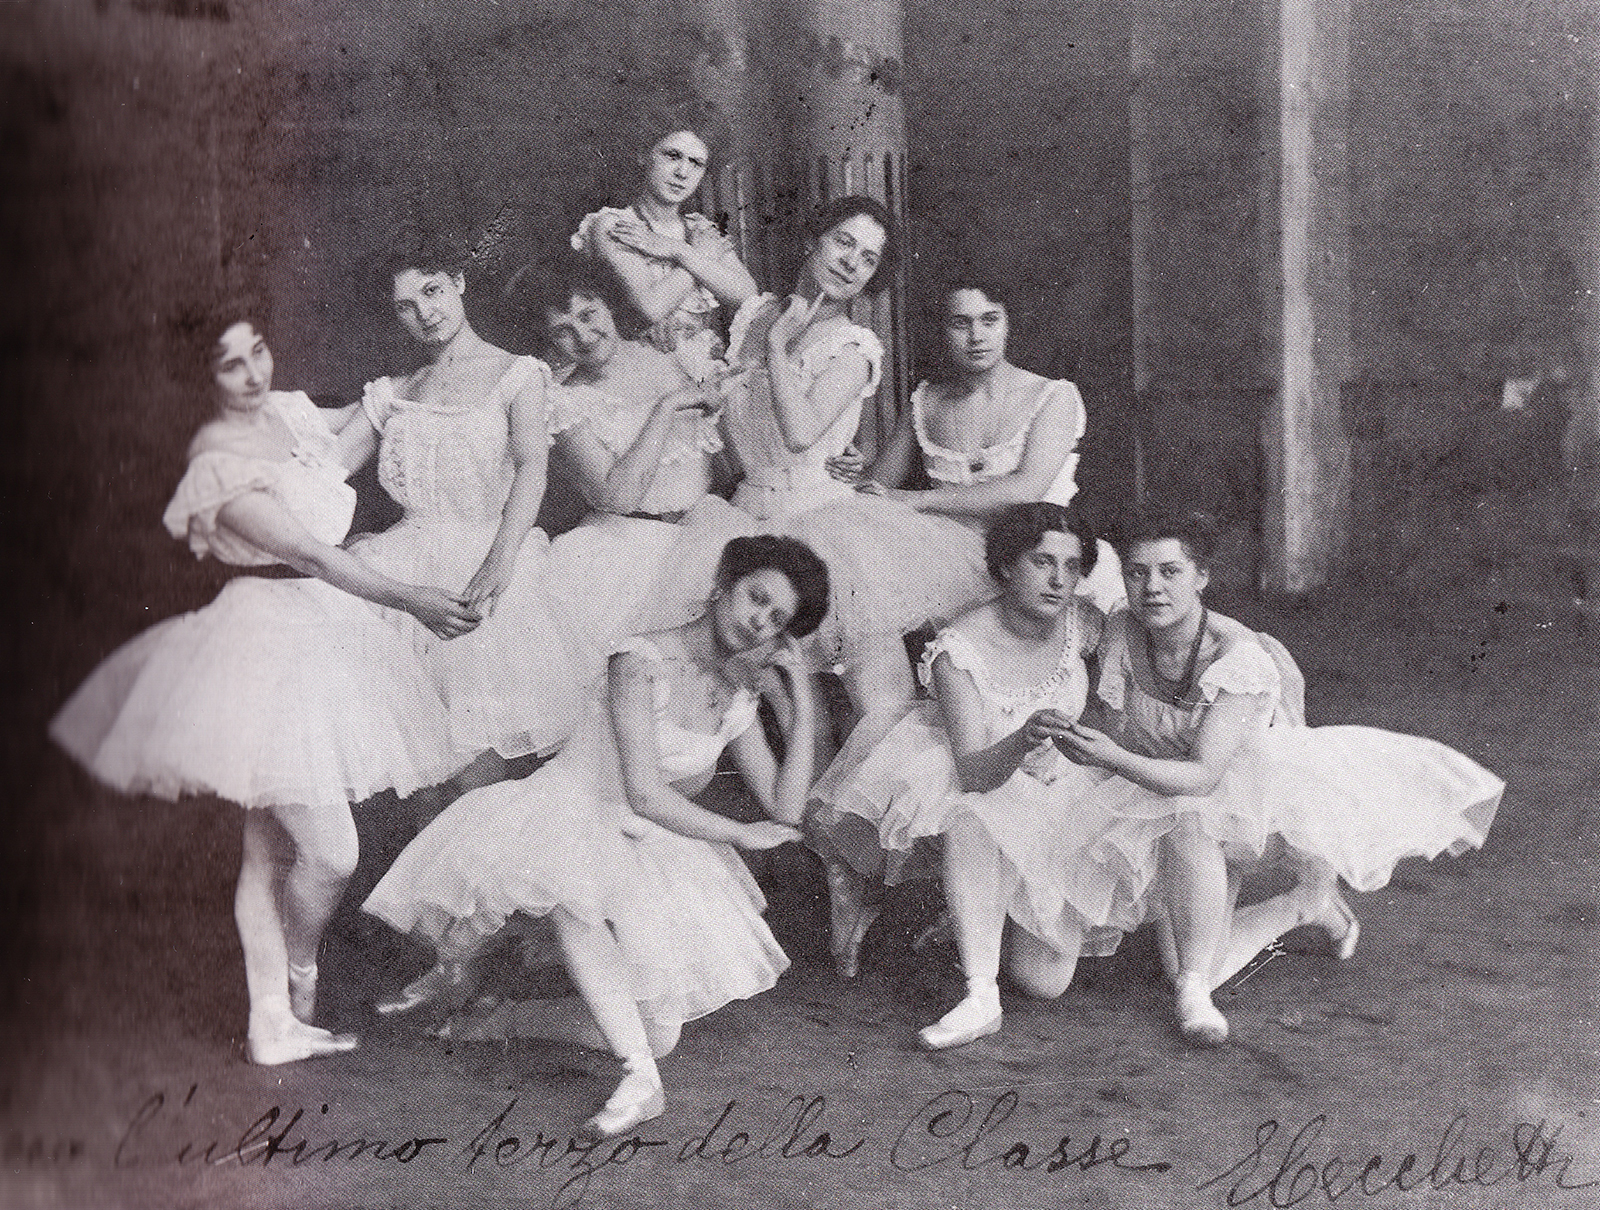 Cecchetti's students before a performance in St. Petersburg 1900 (photo courtesy Livia Brillarelli)